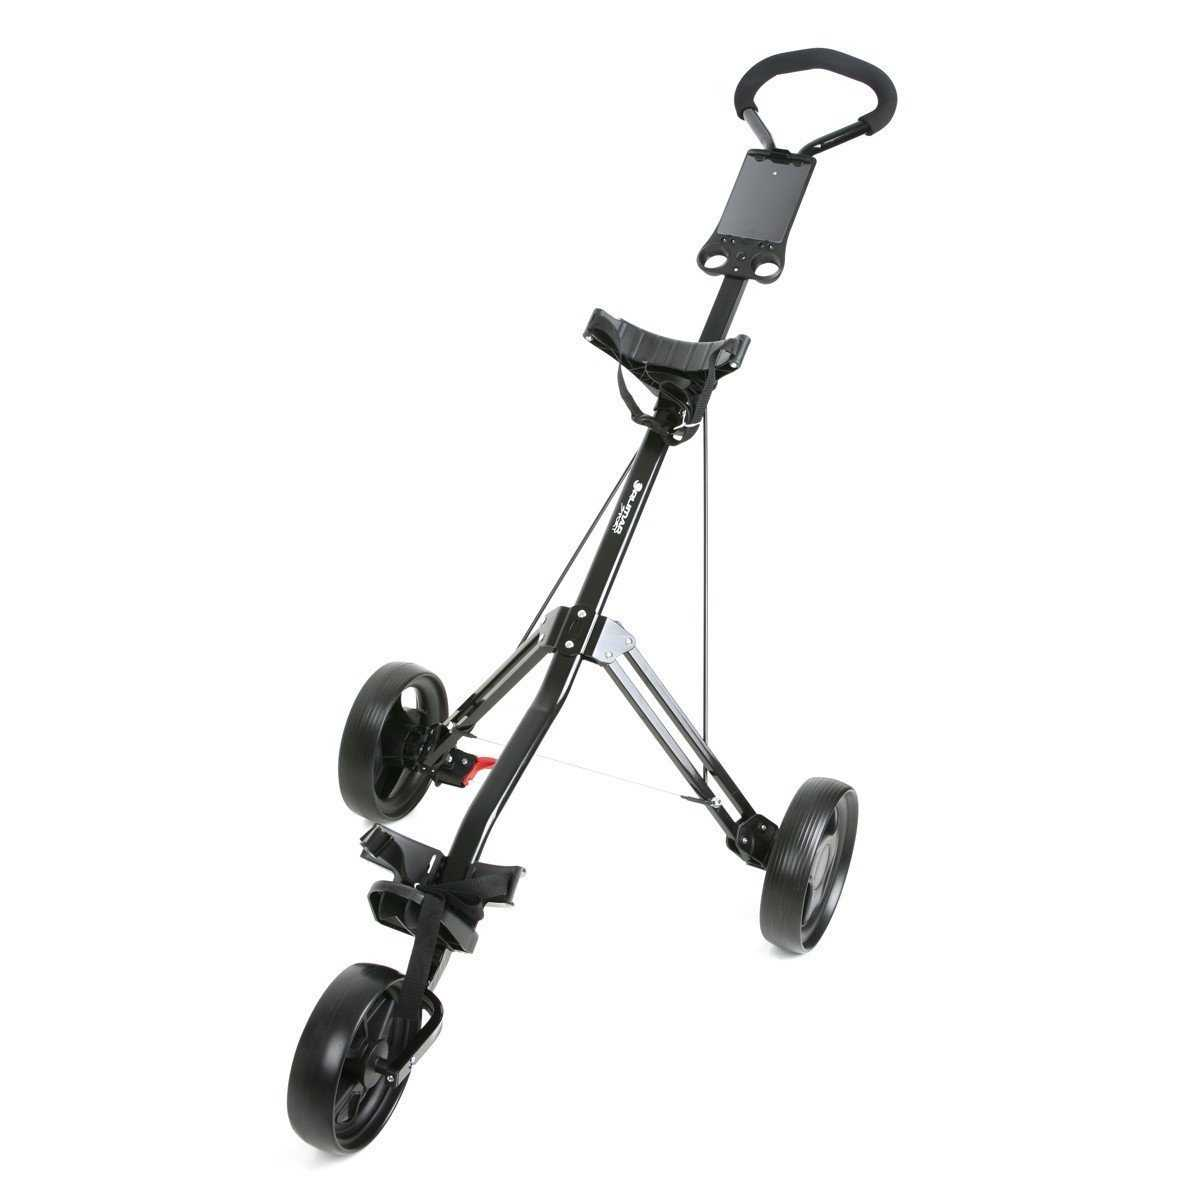 Orlimar Sport Trakker Two/Three Wheel Golf Push Cart - Black ... on golf players, golf handicap, golf card, golf buggy, golf games, golf tools, golf accessories, golf words, golf cartoons, golf hitting nets, golf machine, golf girls, golf trolley,